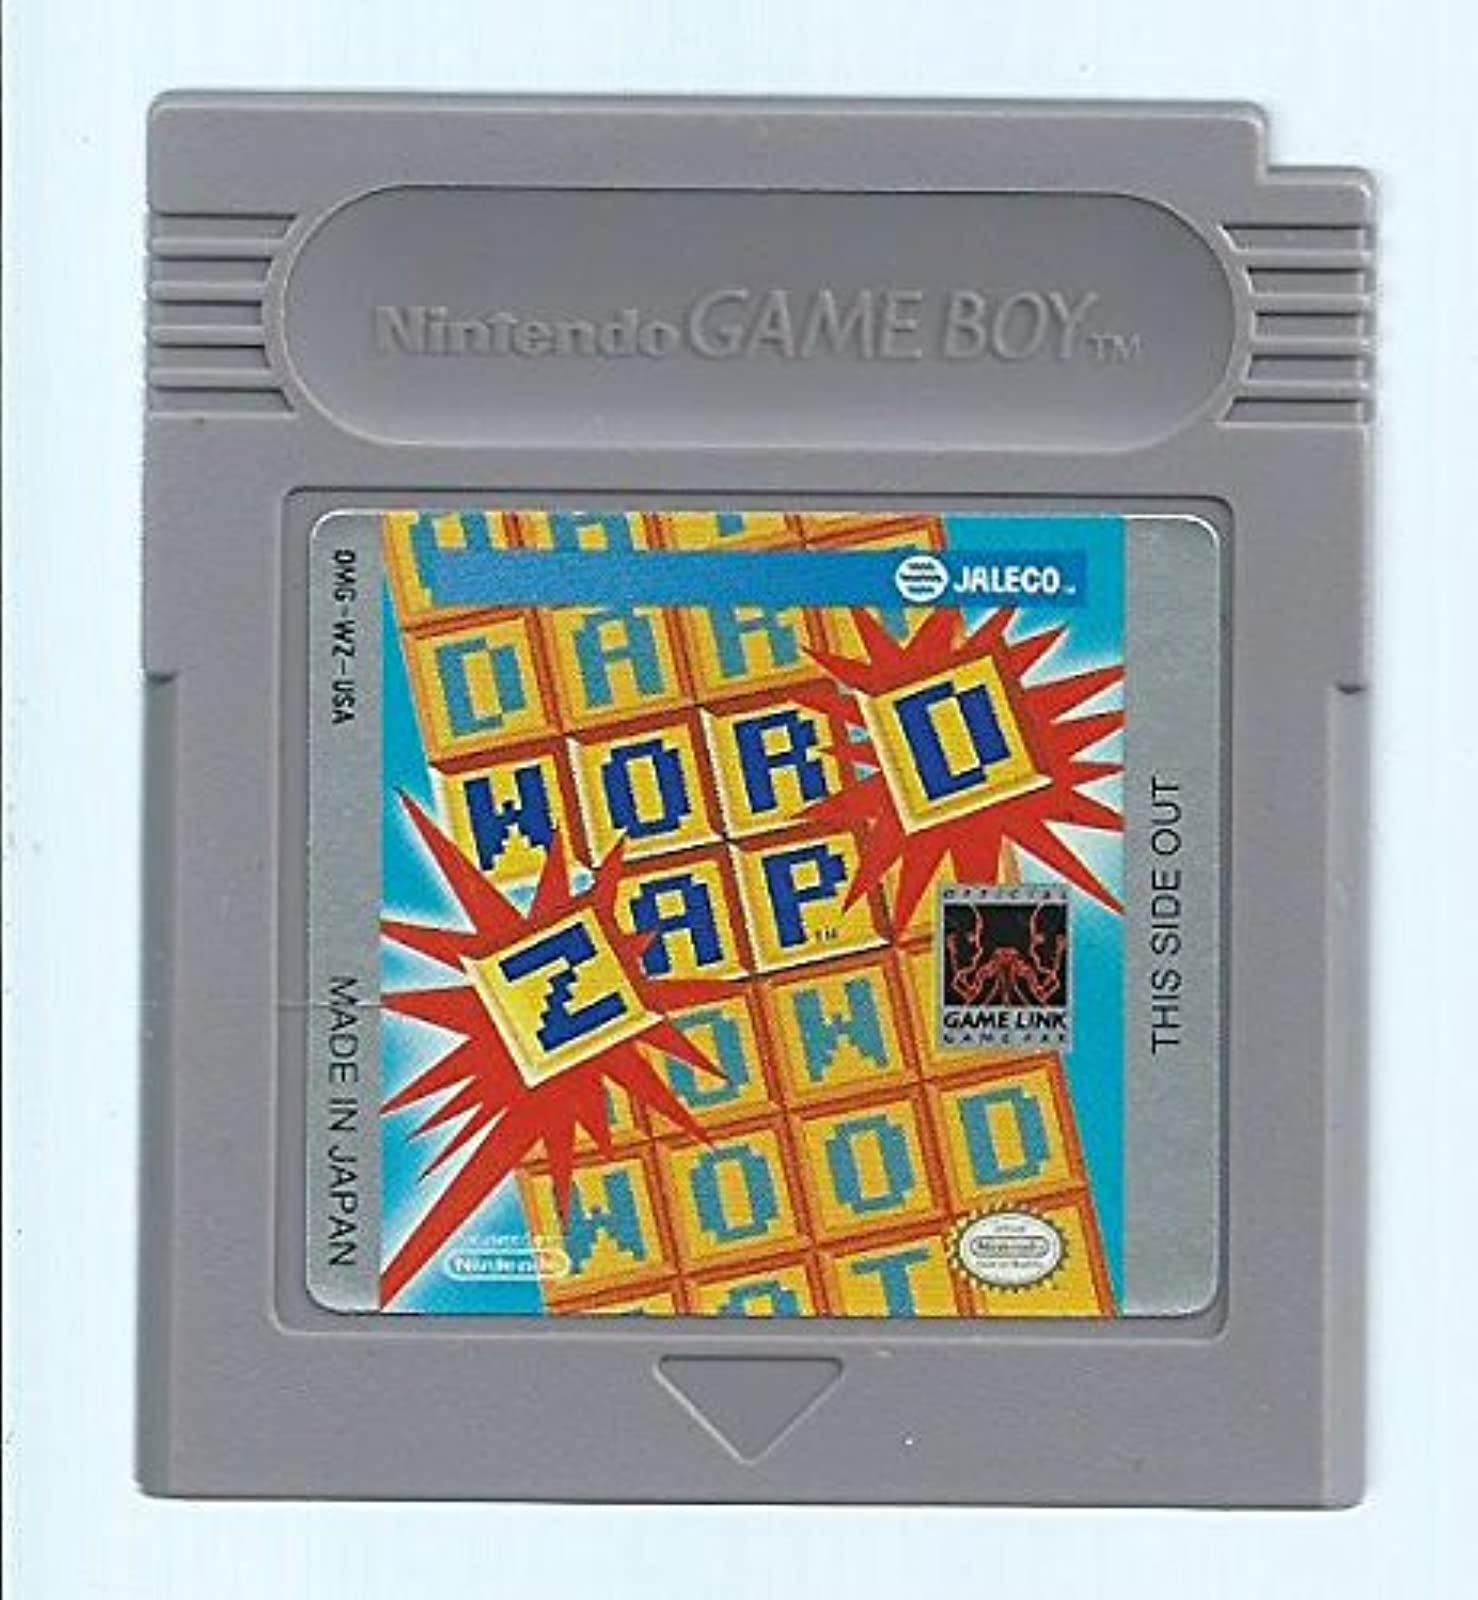 Word Zap For Board Games On Gameboy